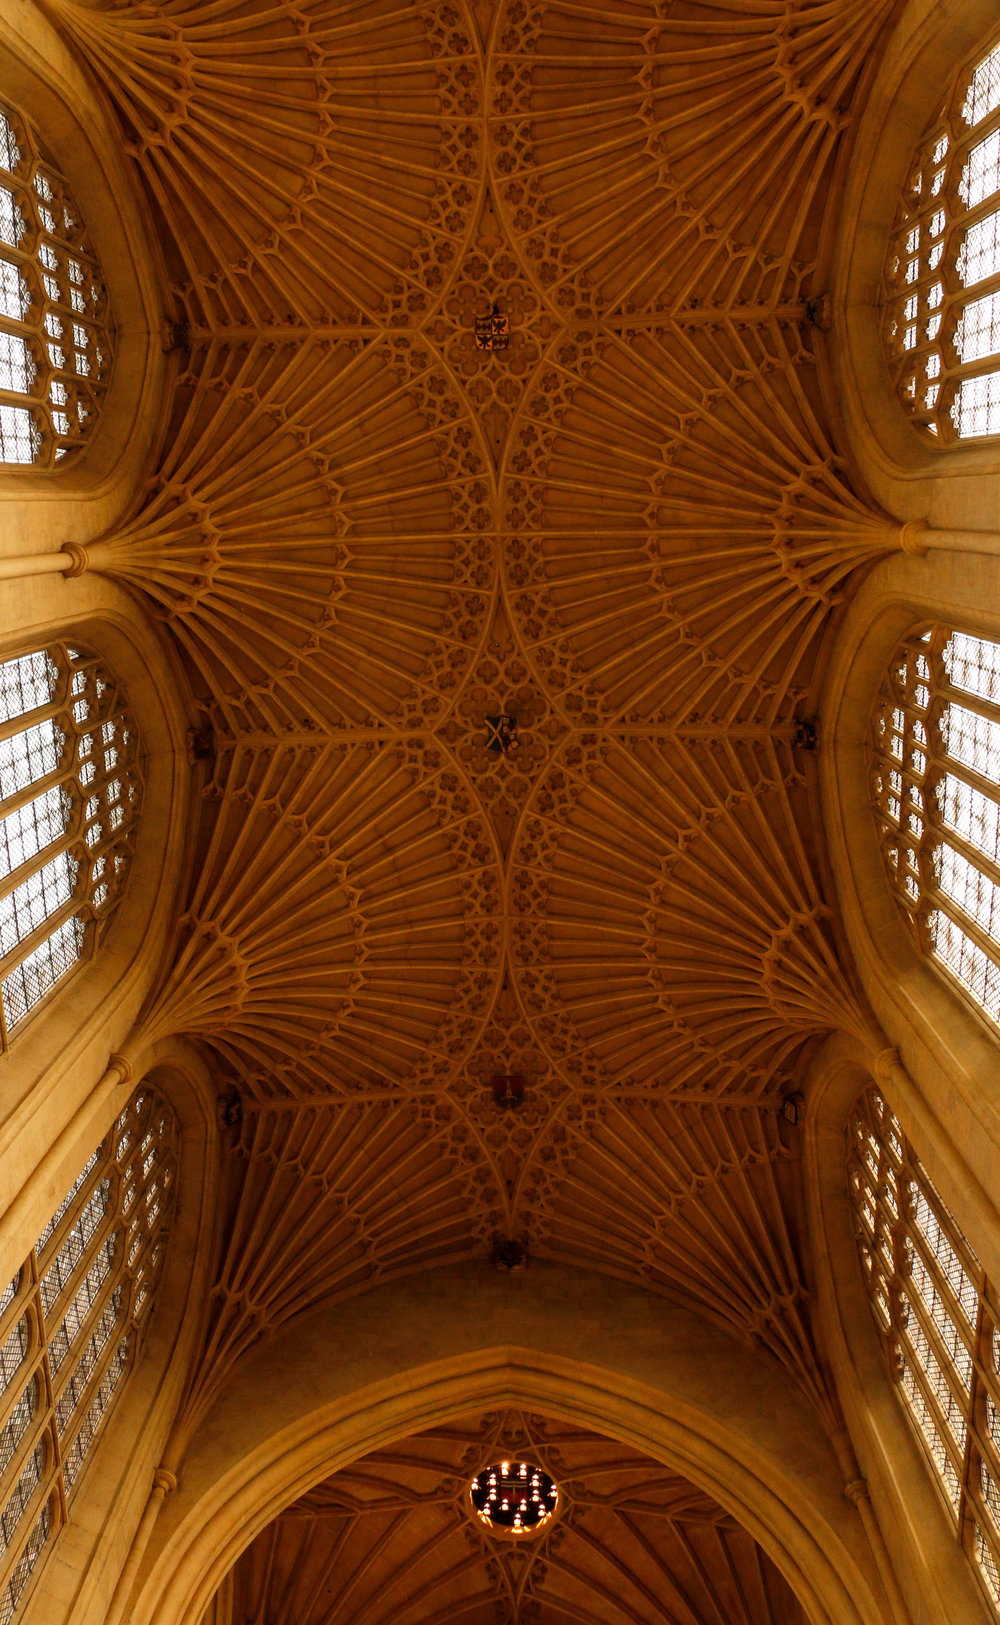 bath-abbey_celing_web.jpg